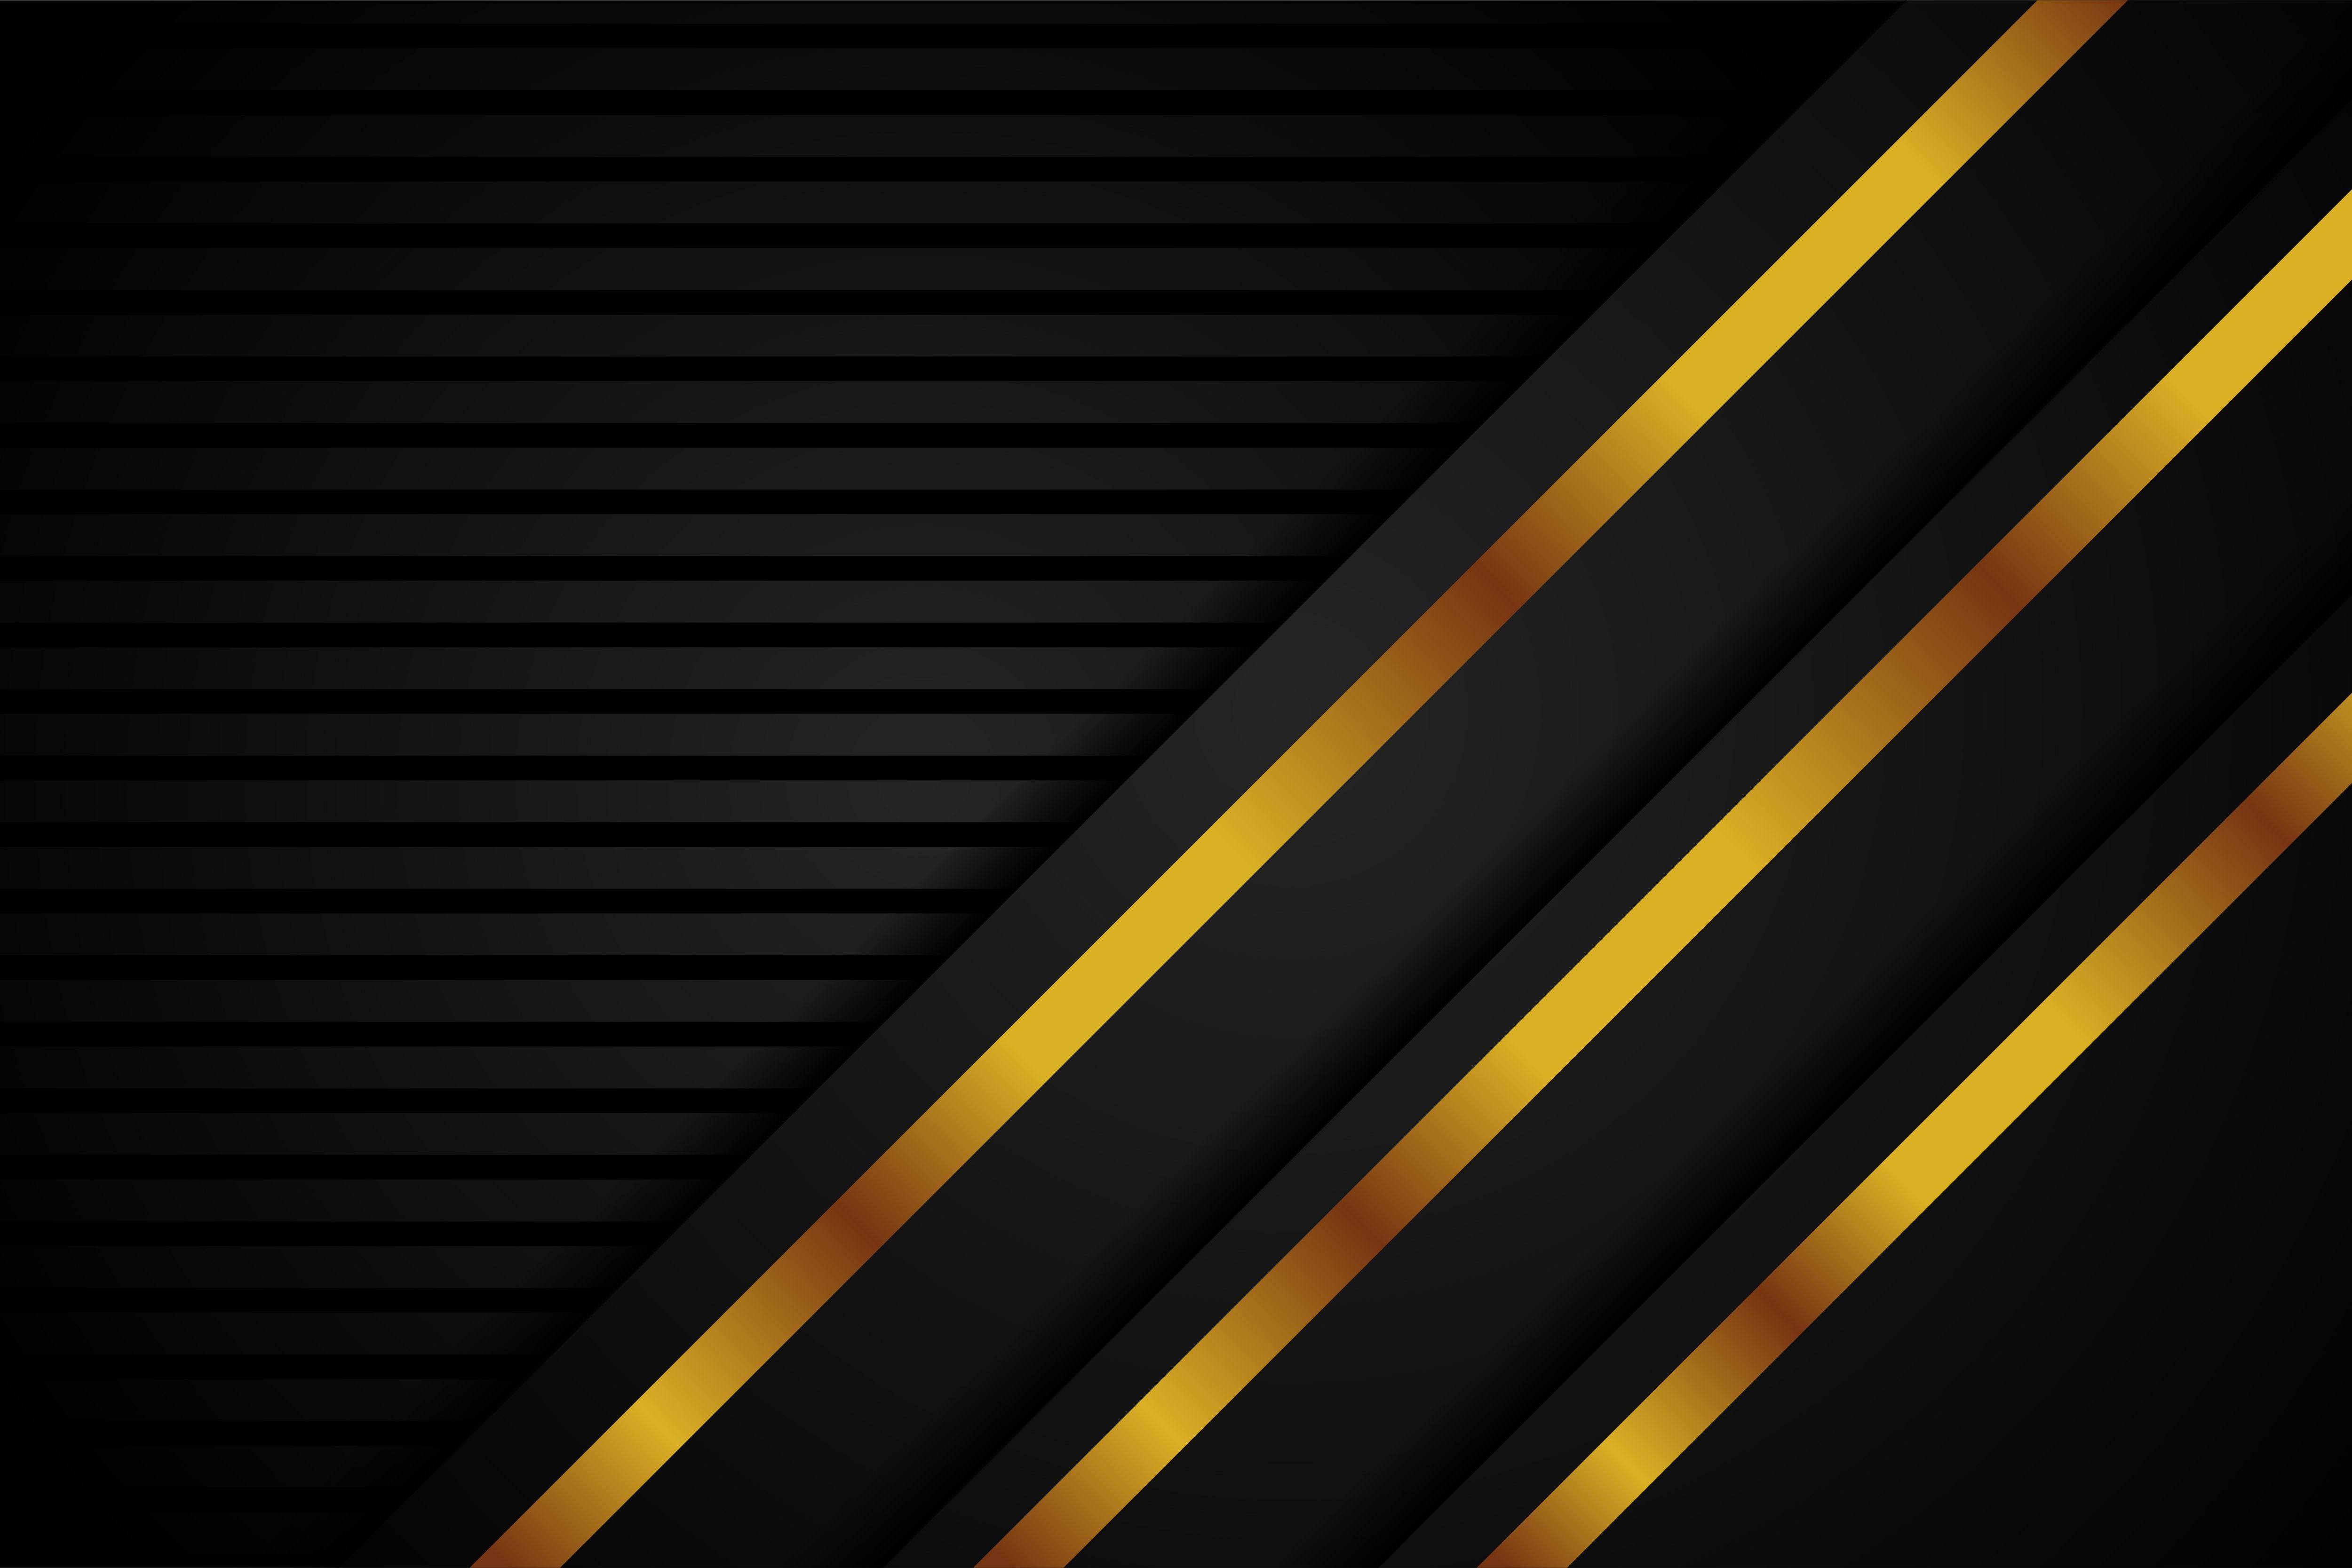 Black Gold Diagonal Abstract Background Graphic By Noory Shopper Creative Fabrica Abstract Backgrounds Abstract Luxury Background